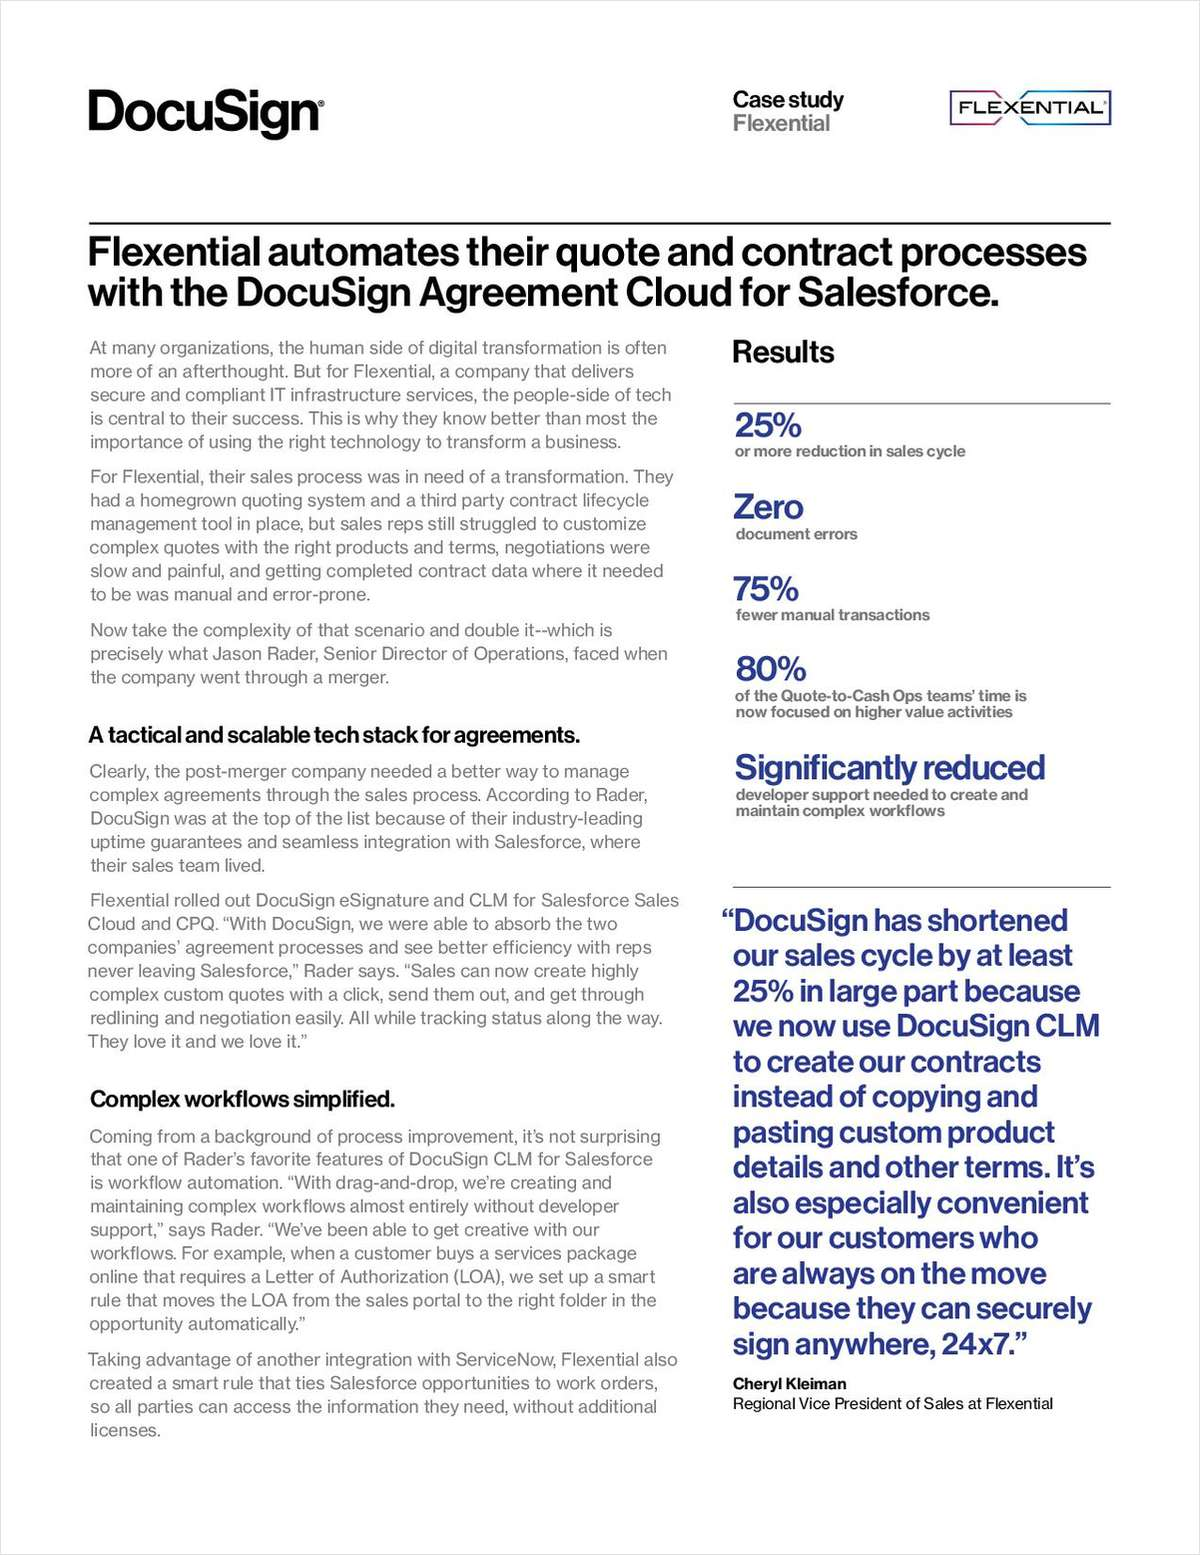 Contract Automation: Flexential's Key to Shortening the Sales Cycle by 25%